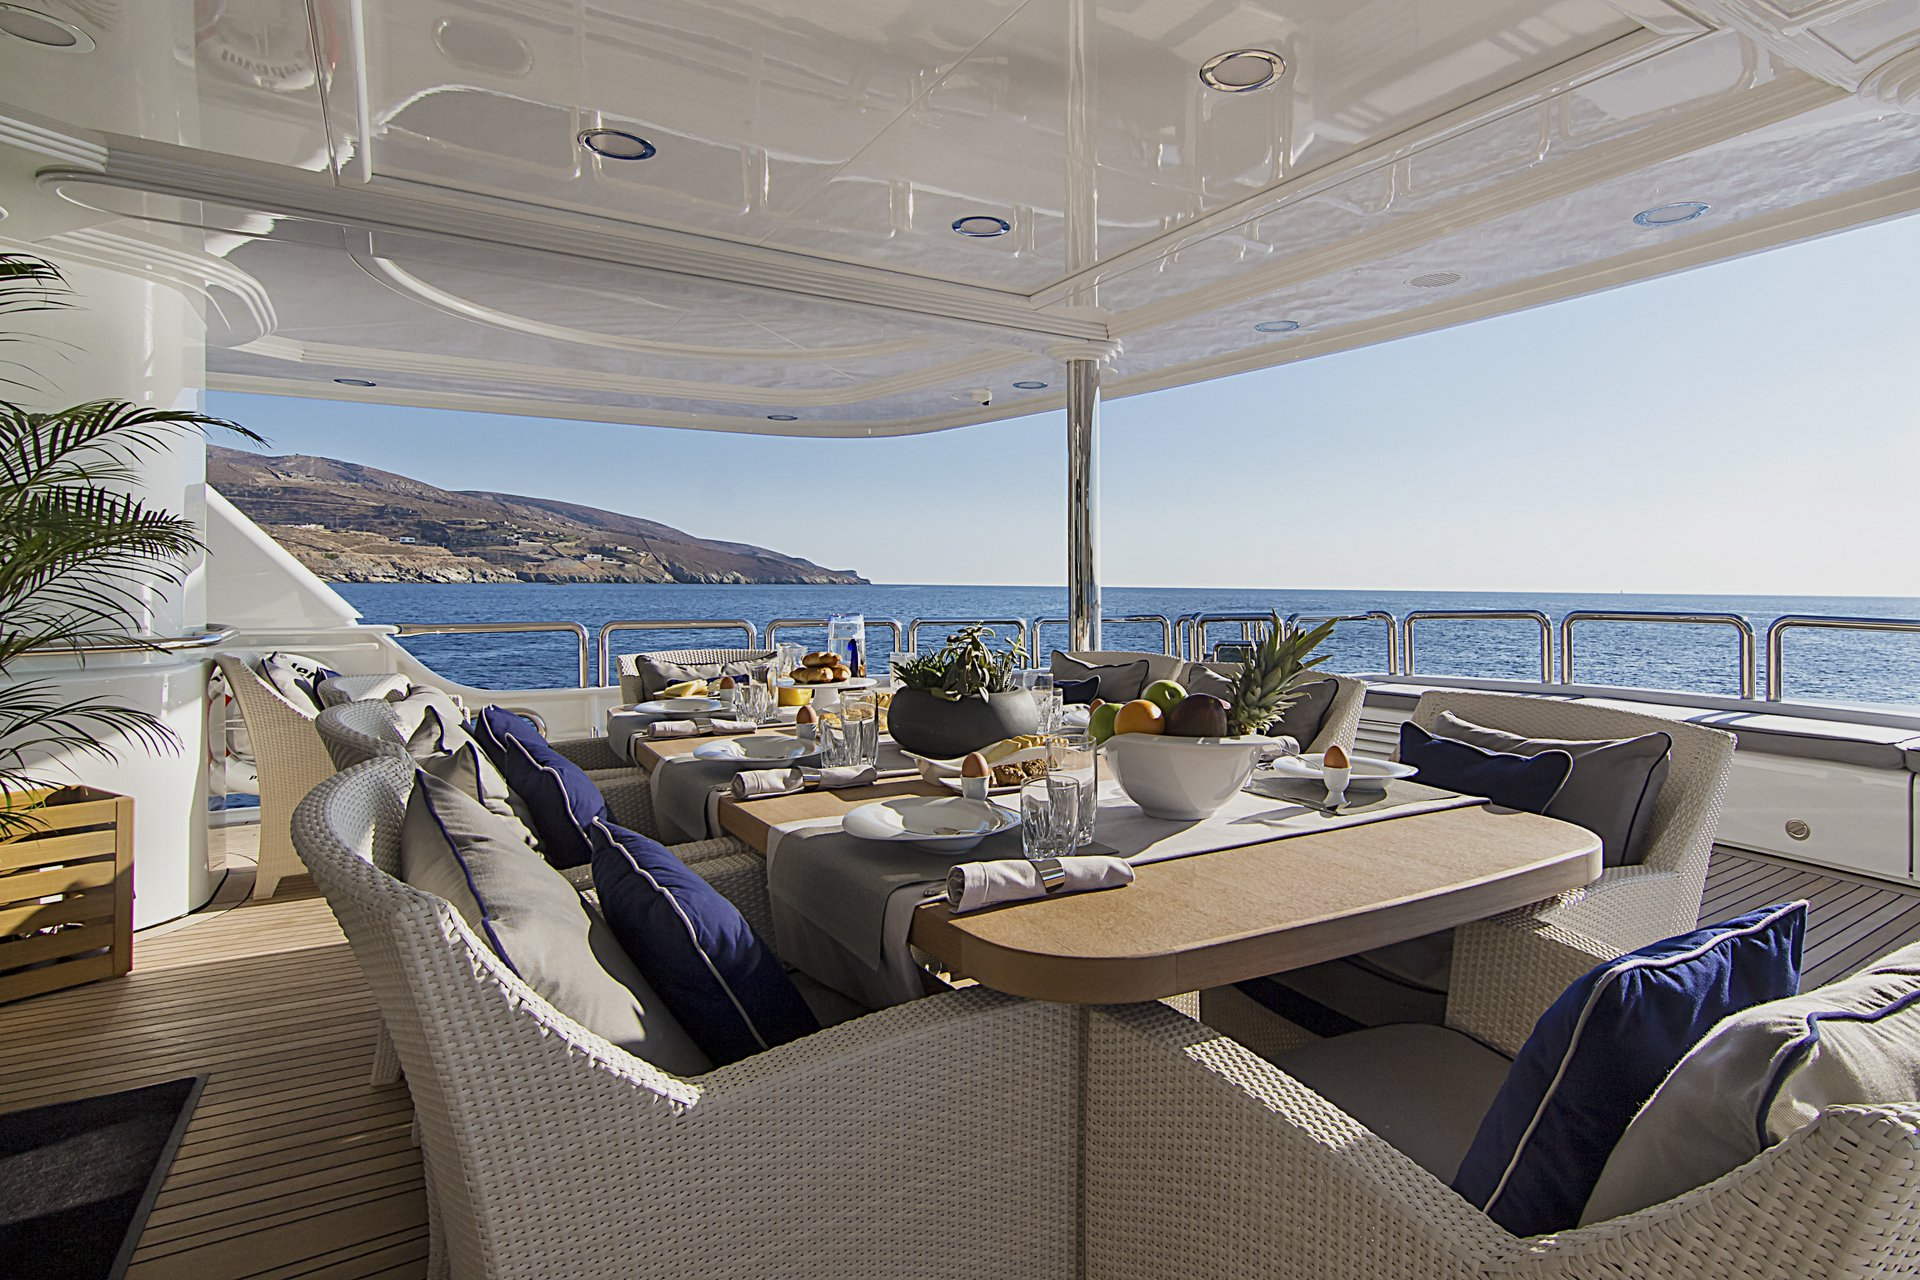 m/y invader yacht for charter outdoor breakfast